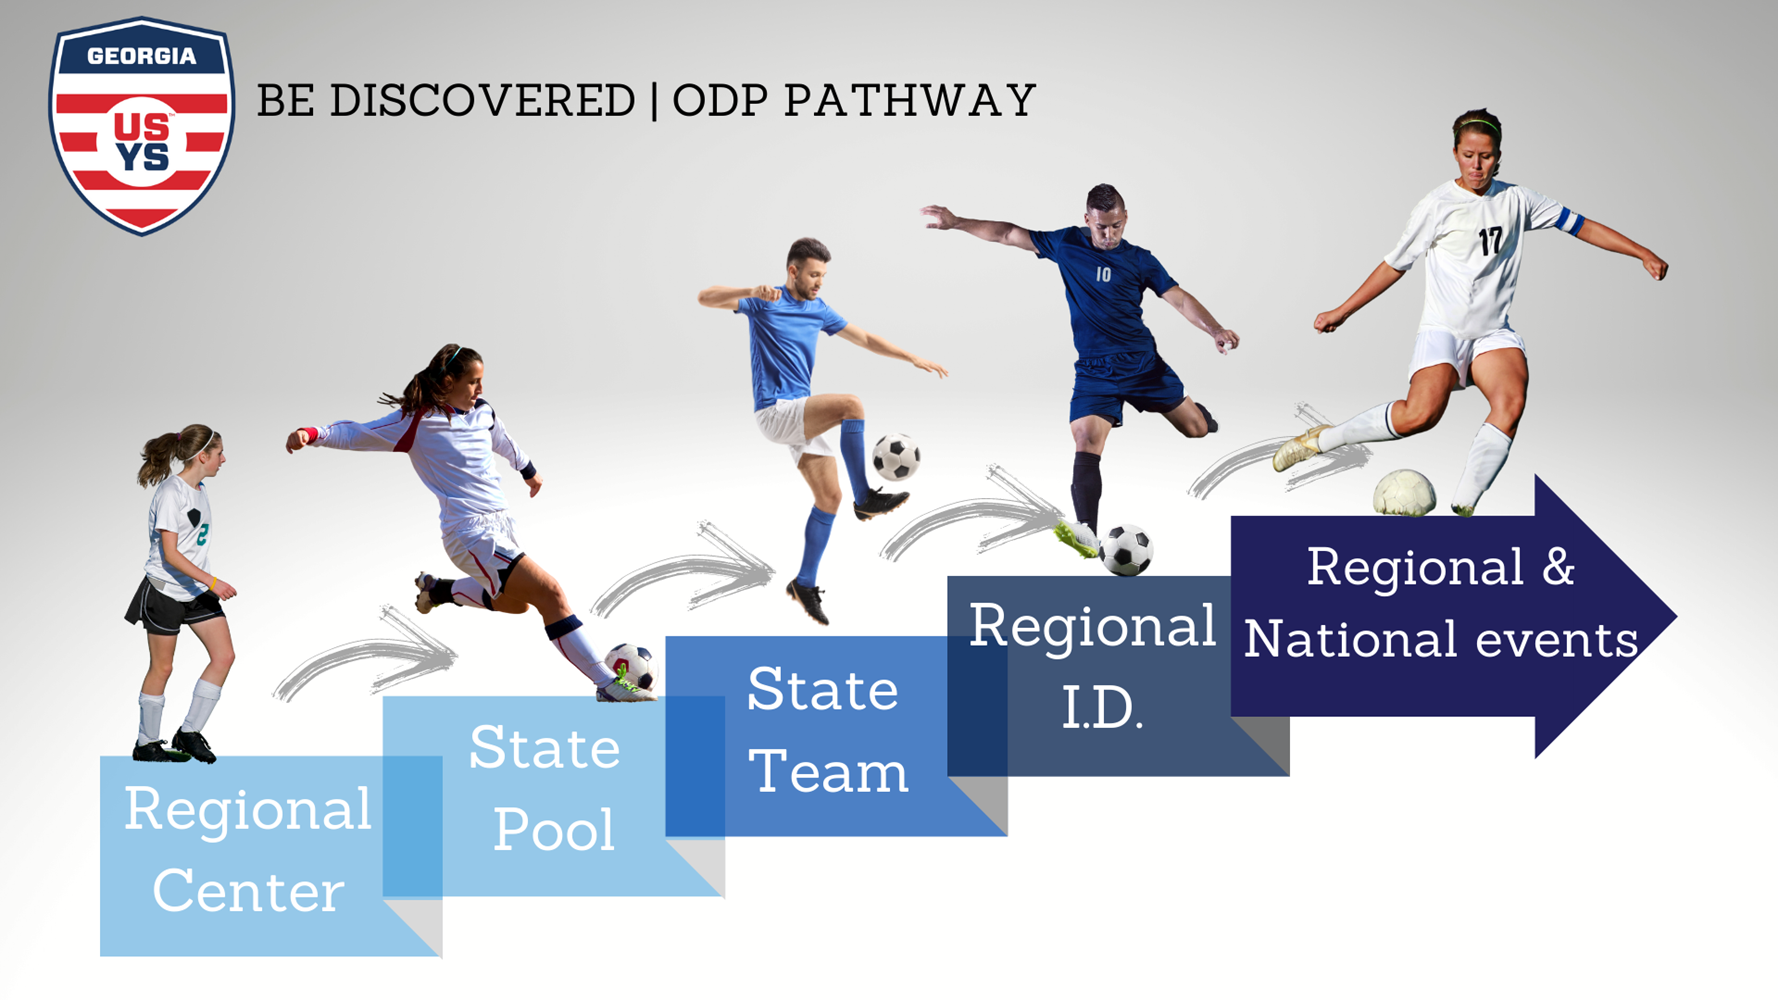 Regional_Identification_Centers_Pathway_(1)